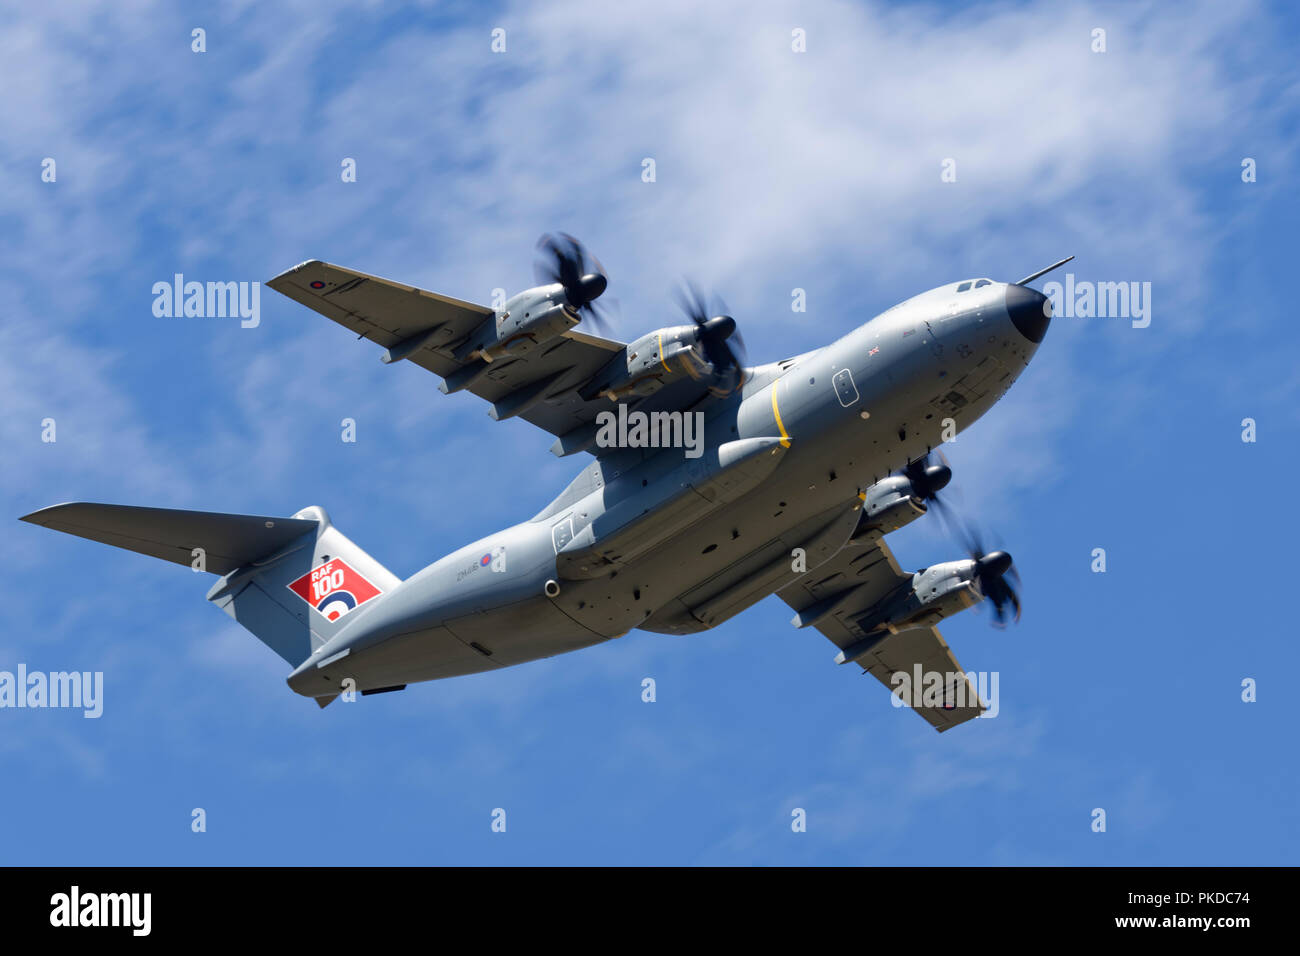 British Royal Air Force Airbus A400M Atlas Tactical Airlifter arrives overhead RAF Fairford to participate in the Royal International Air Tattoo - Stock Image